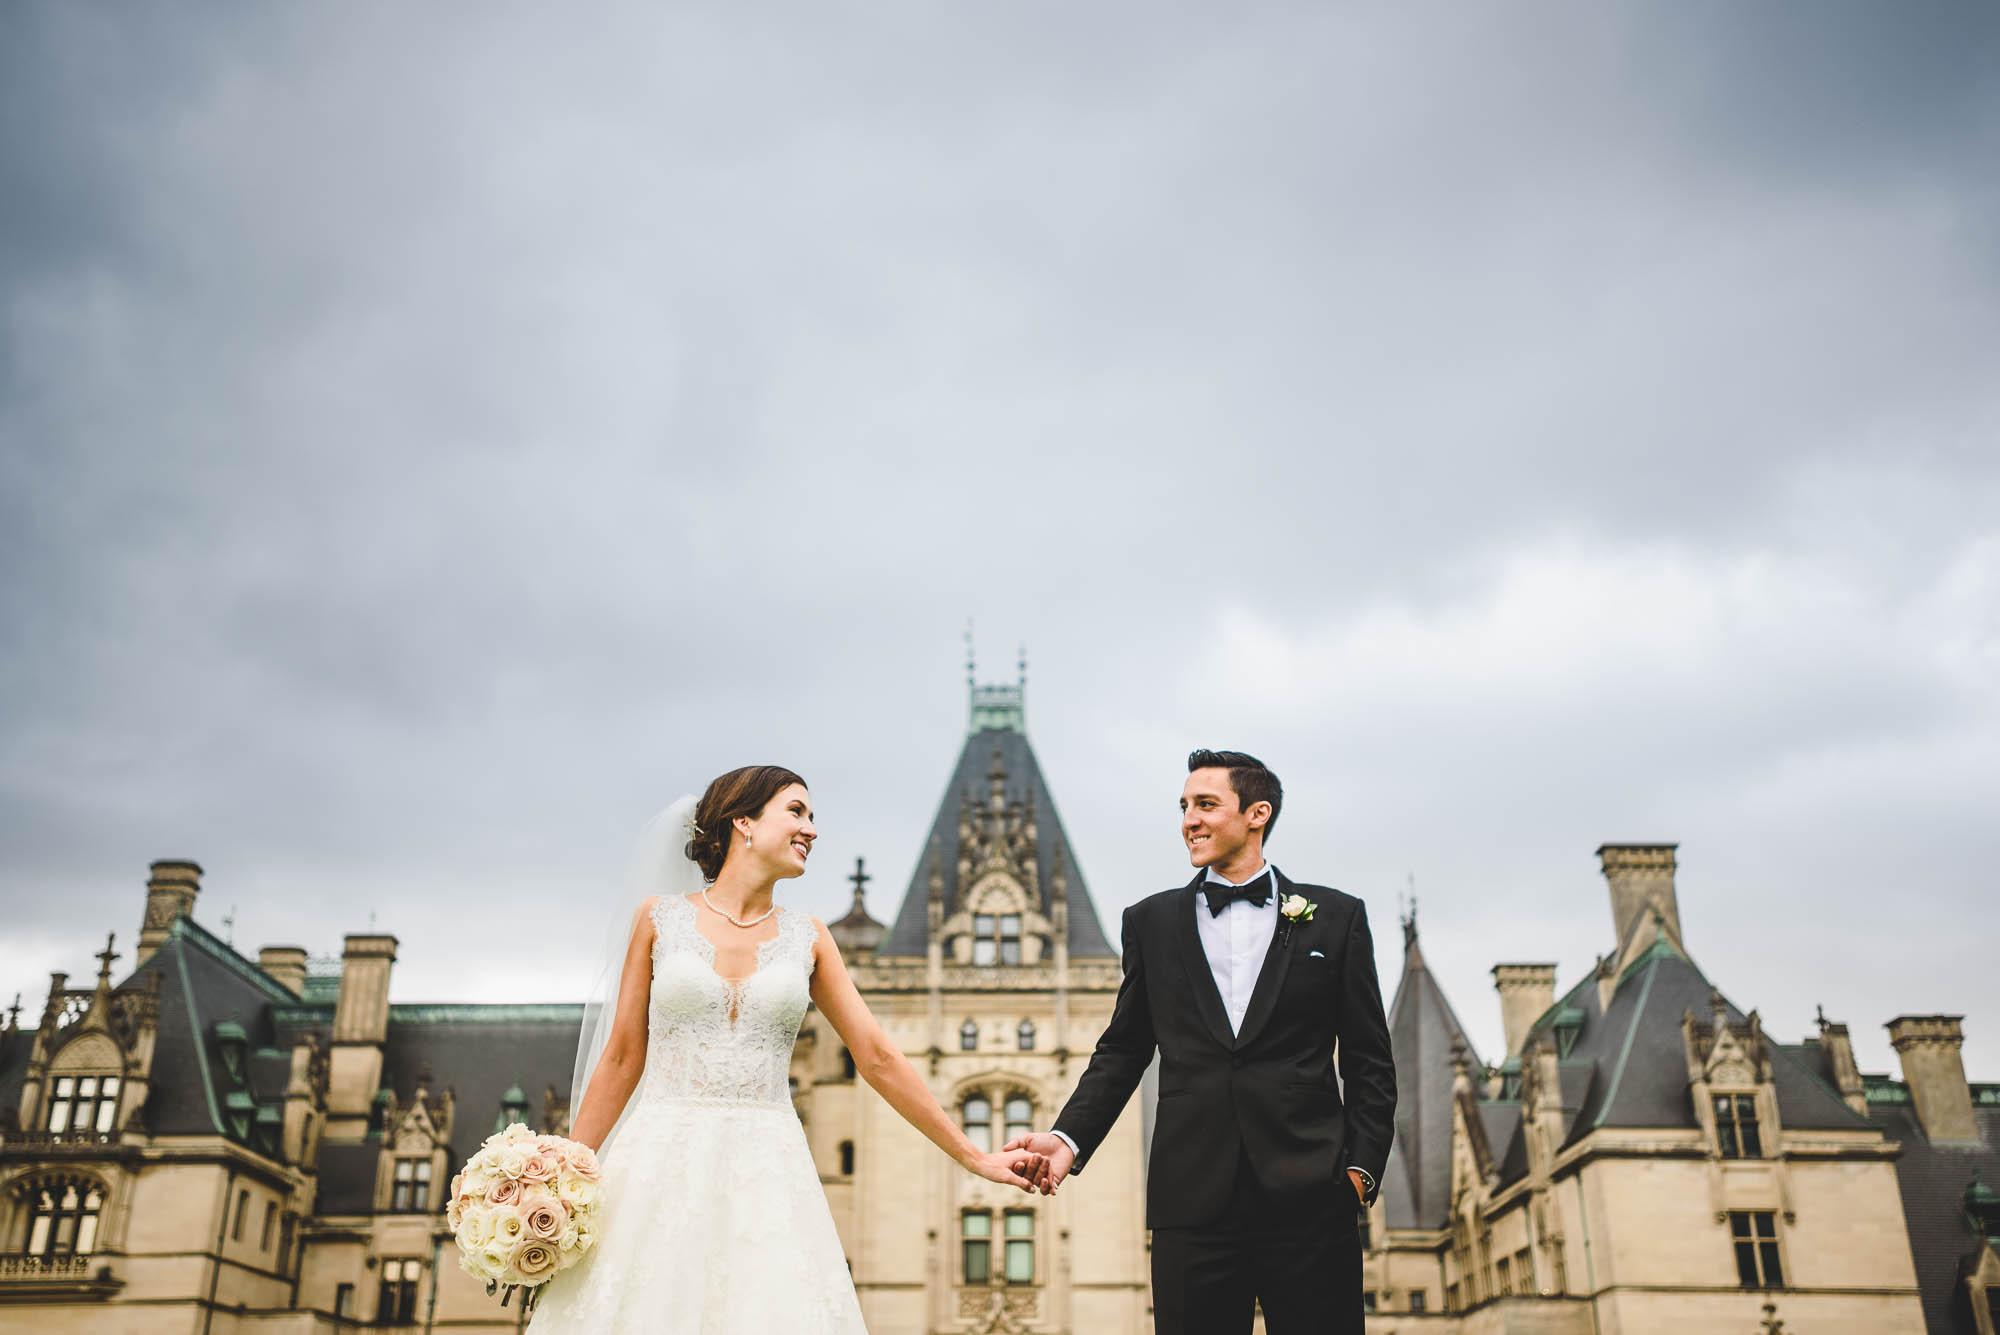 Biltmore weddings Asheville